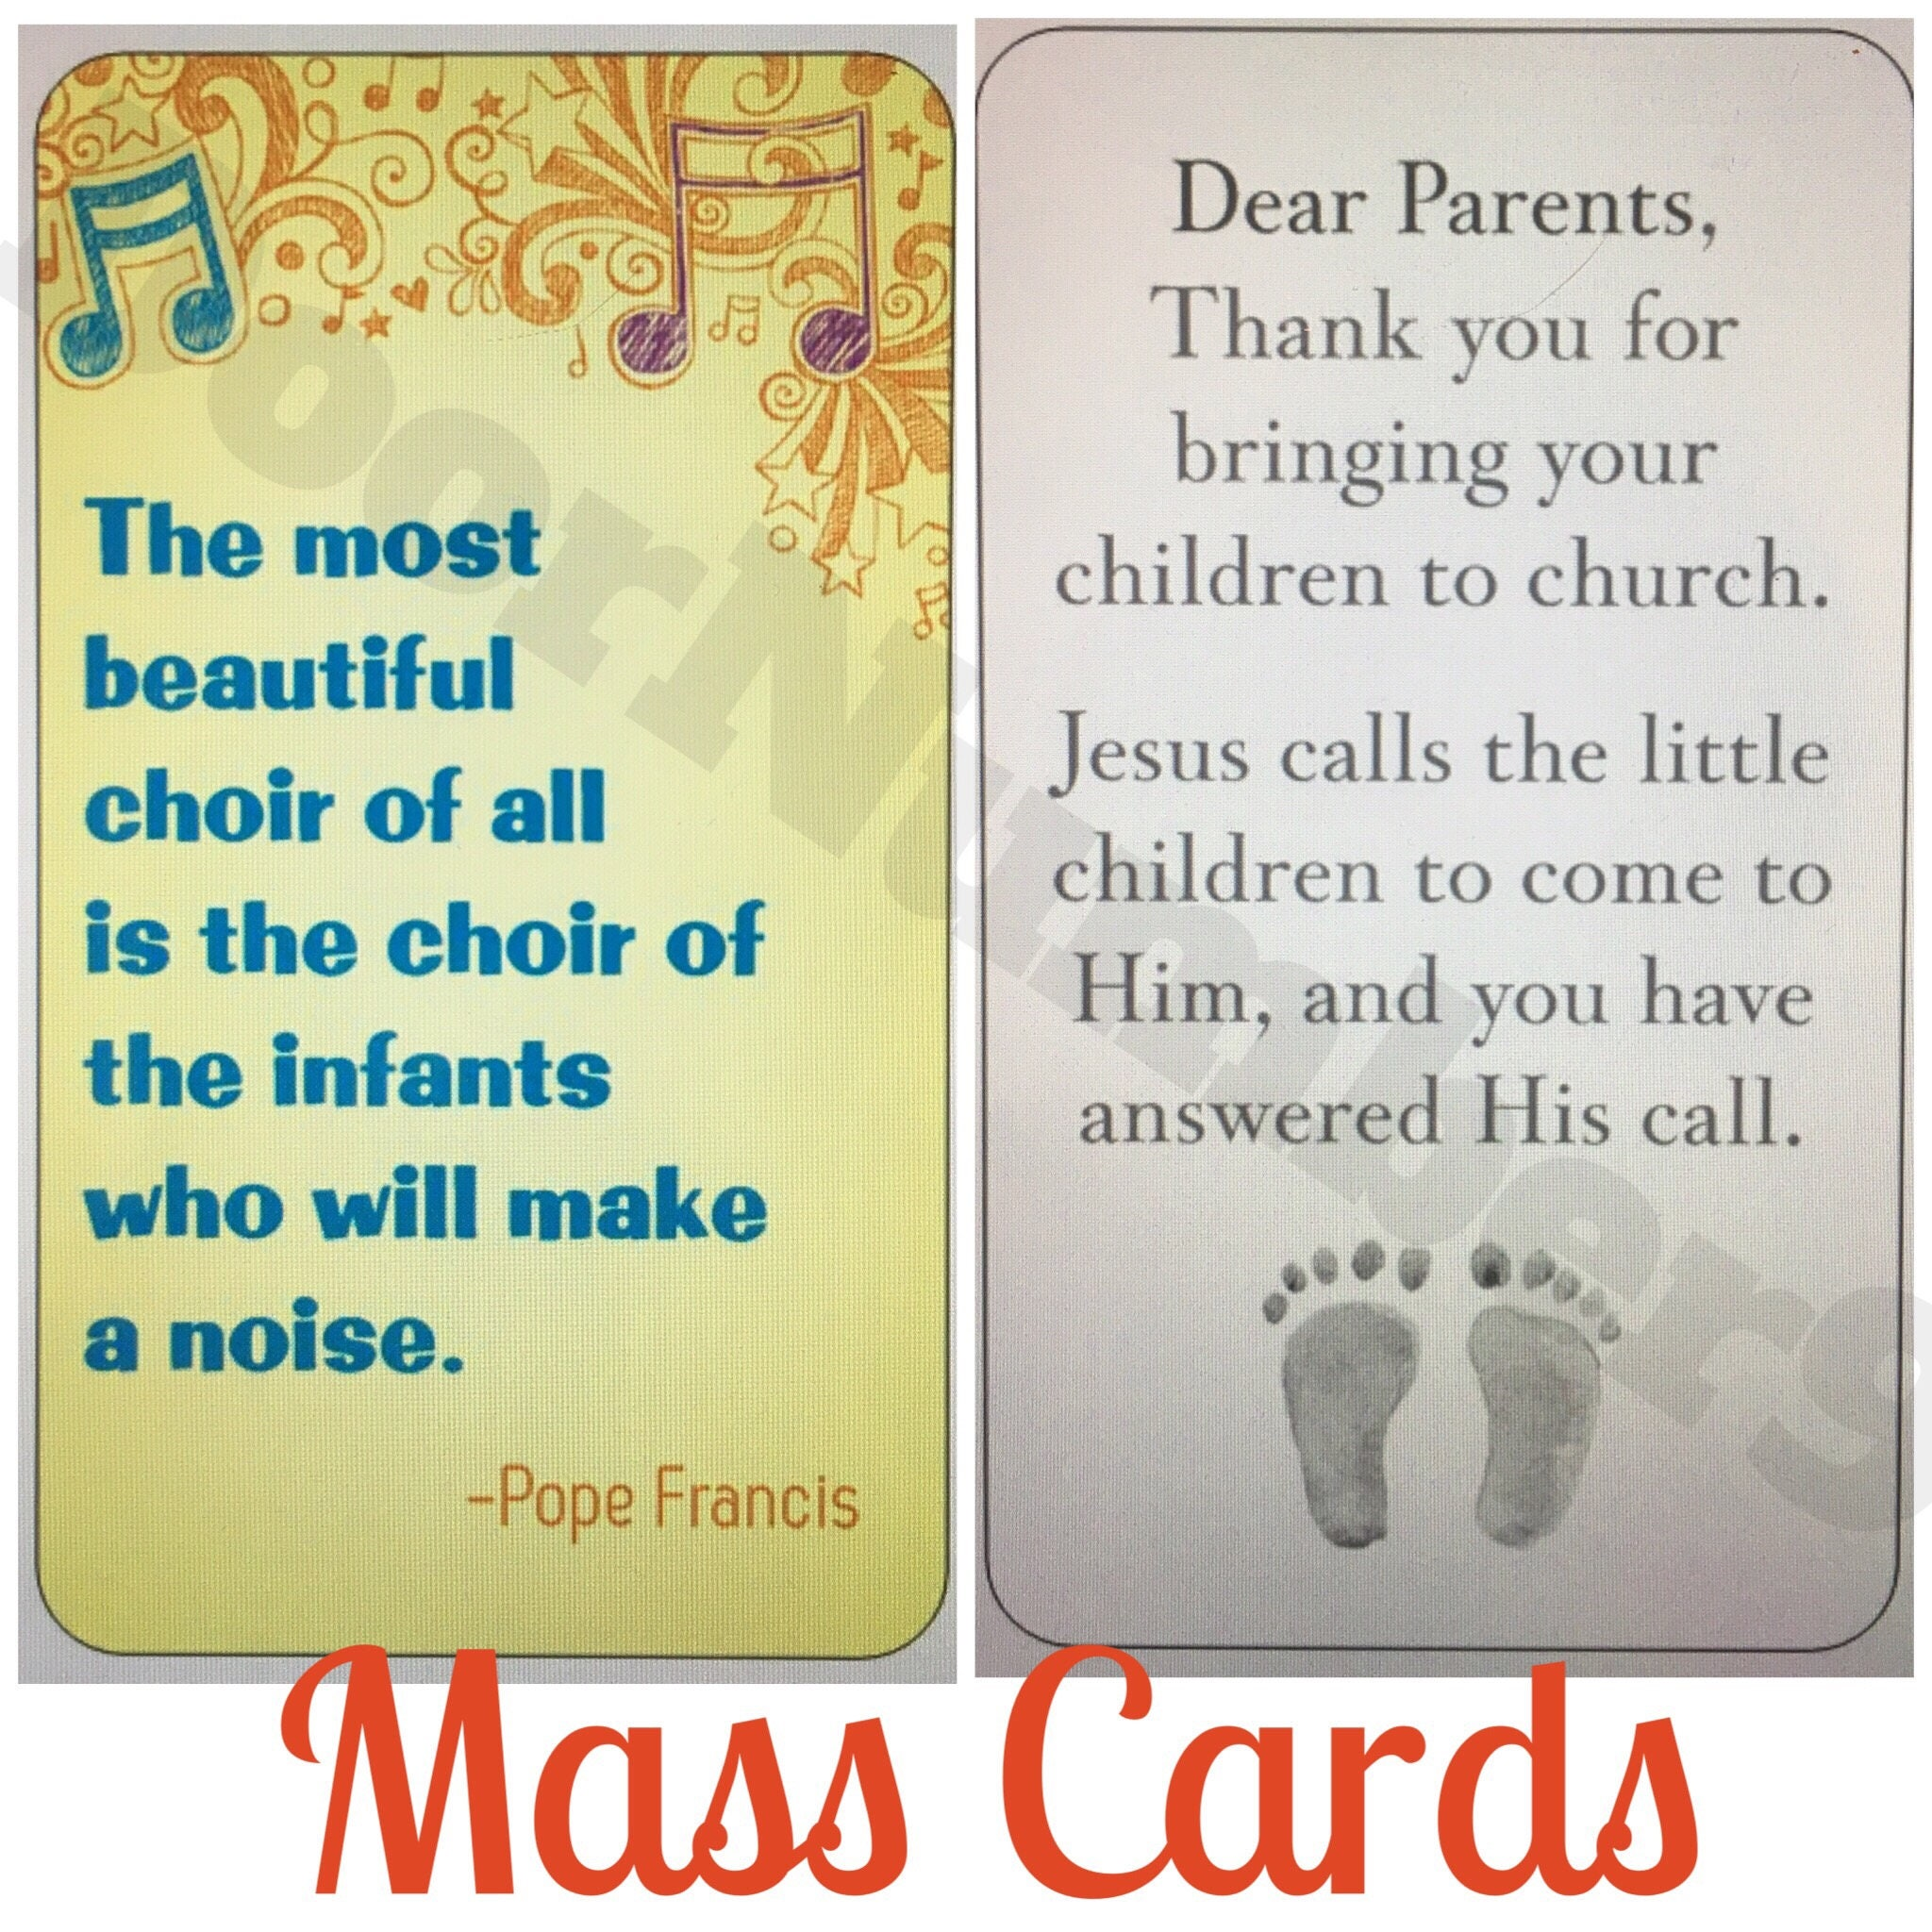 Mass Cards for Parents of Young Children Children in Church